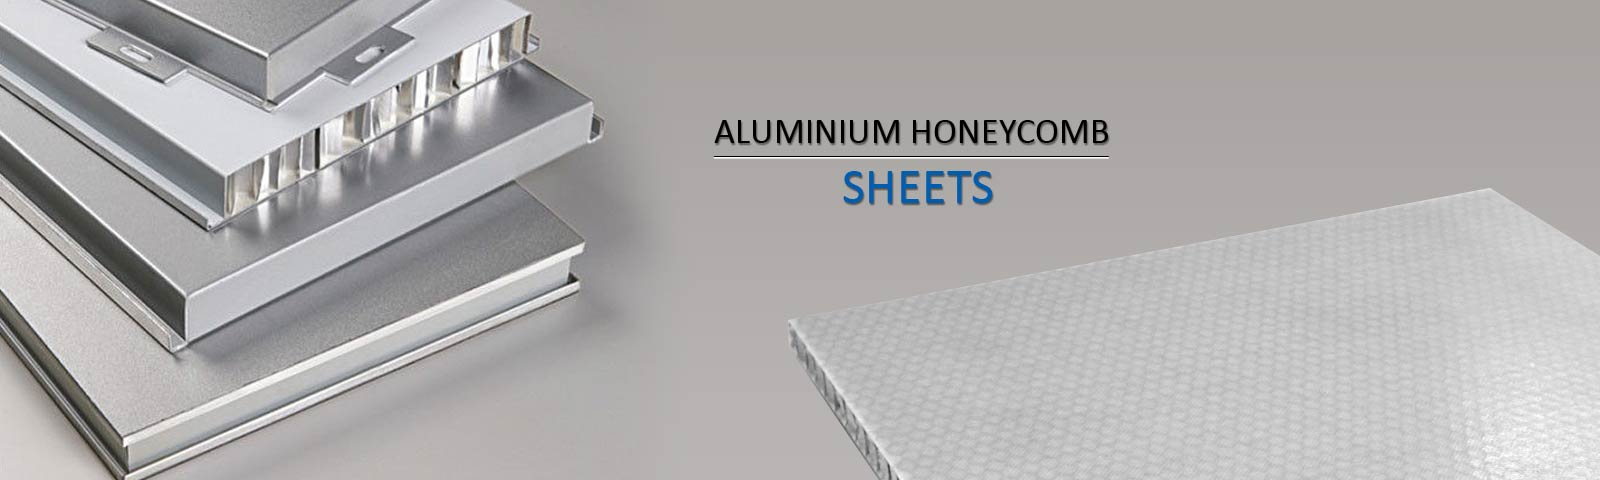 Aluminium Honeycom Sheets Manufacturer and Supplier in Kolkata